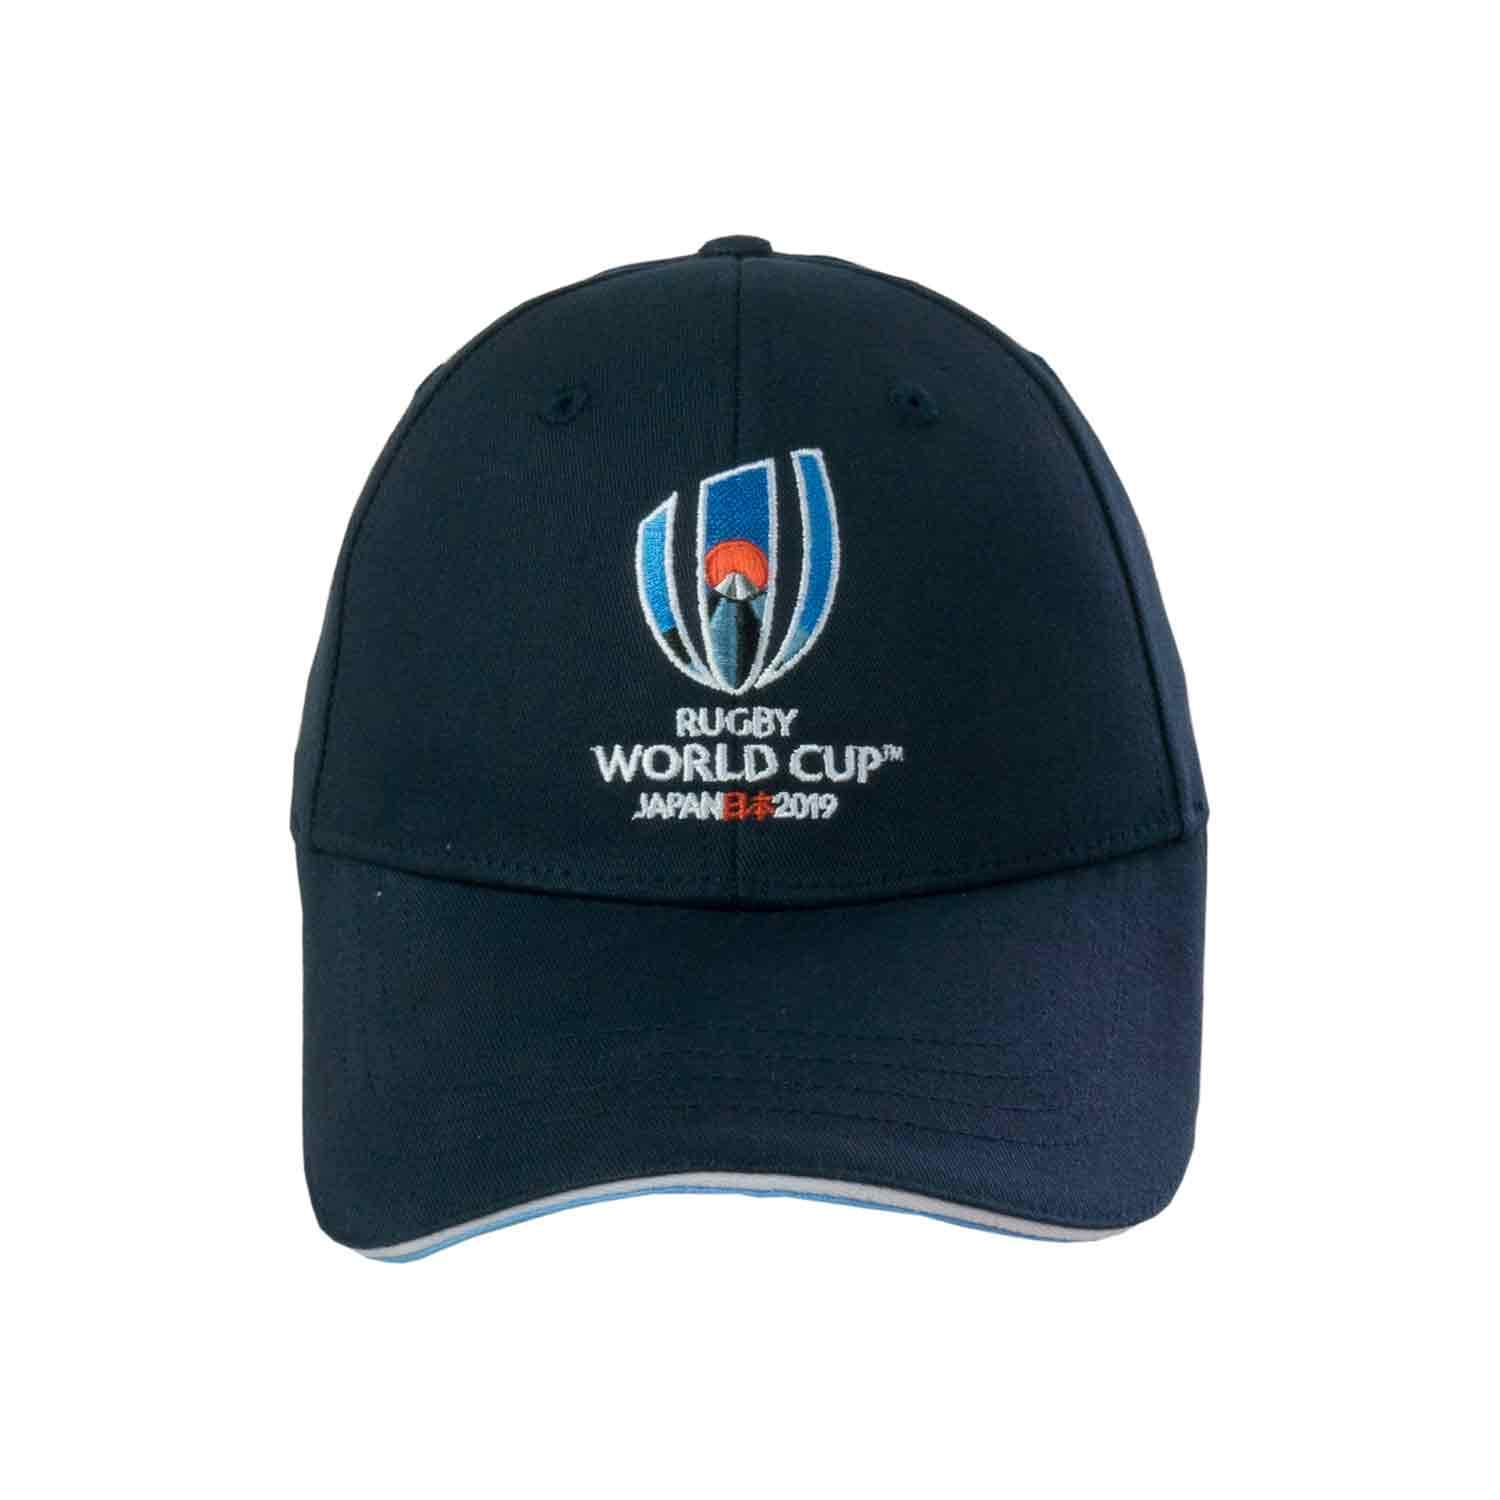 Rugby World Cup 2019 Logo Cap